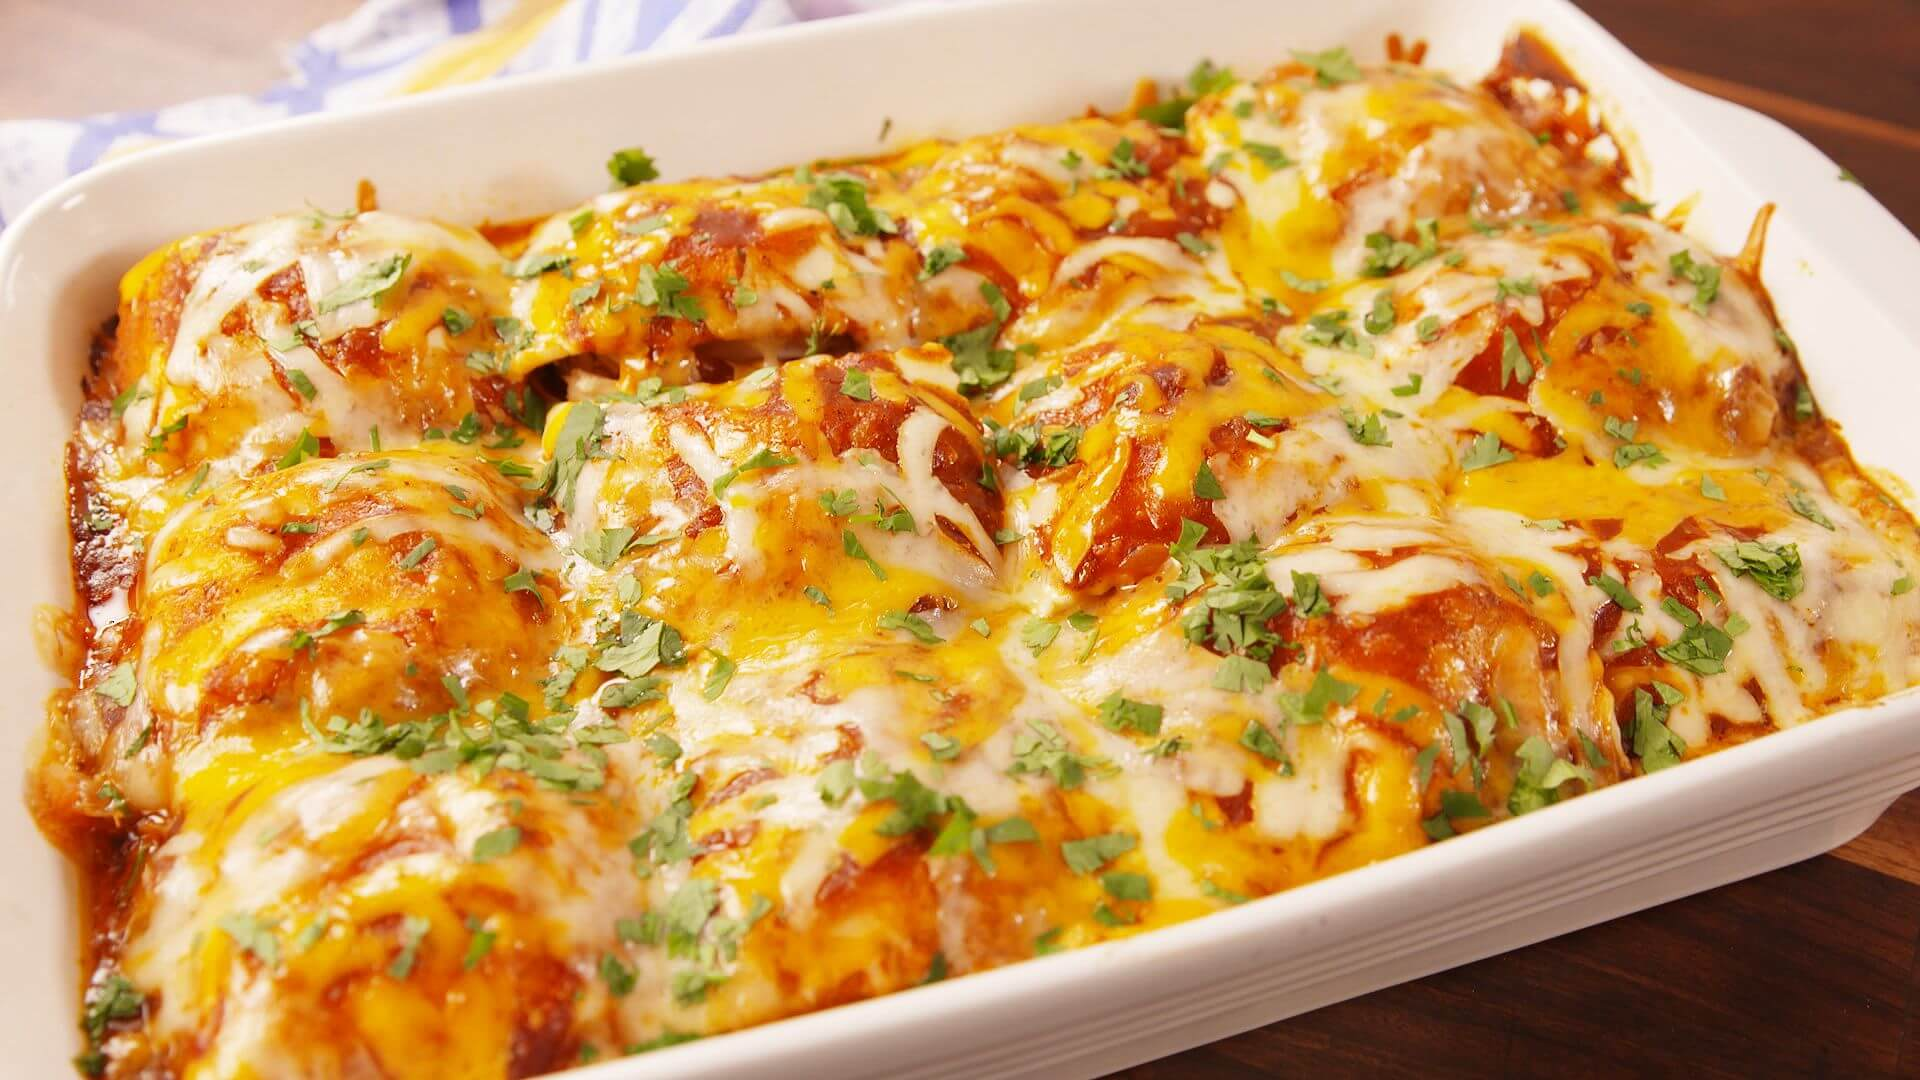 6. Chicken Enchilada Ravioli Bake